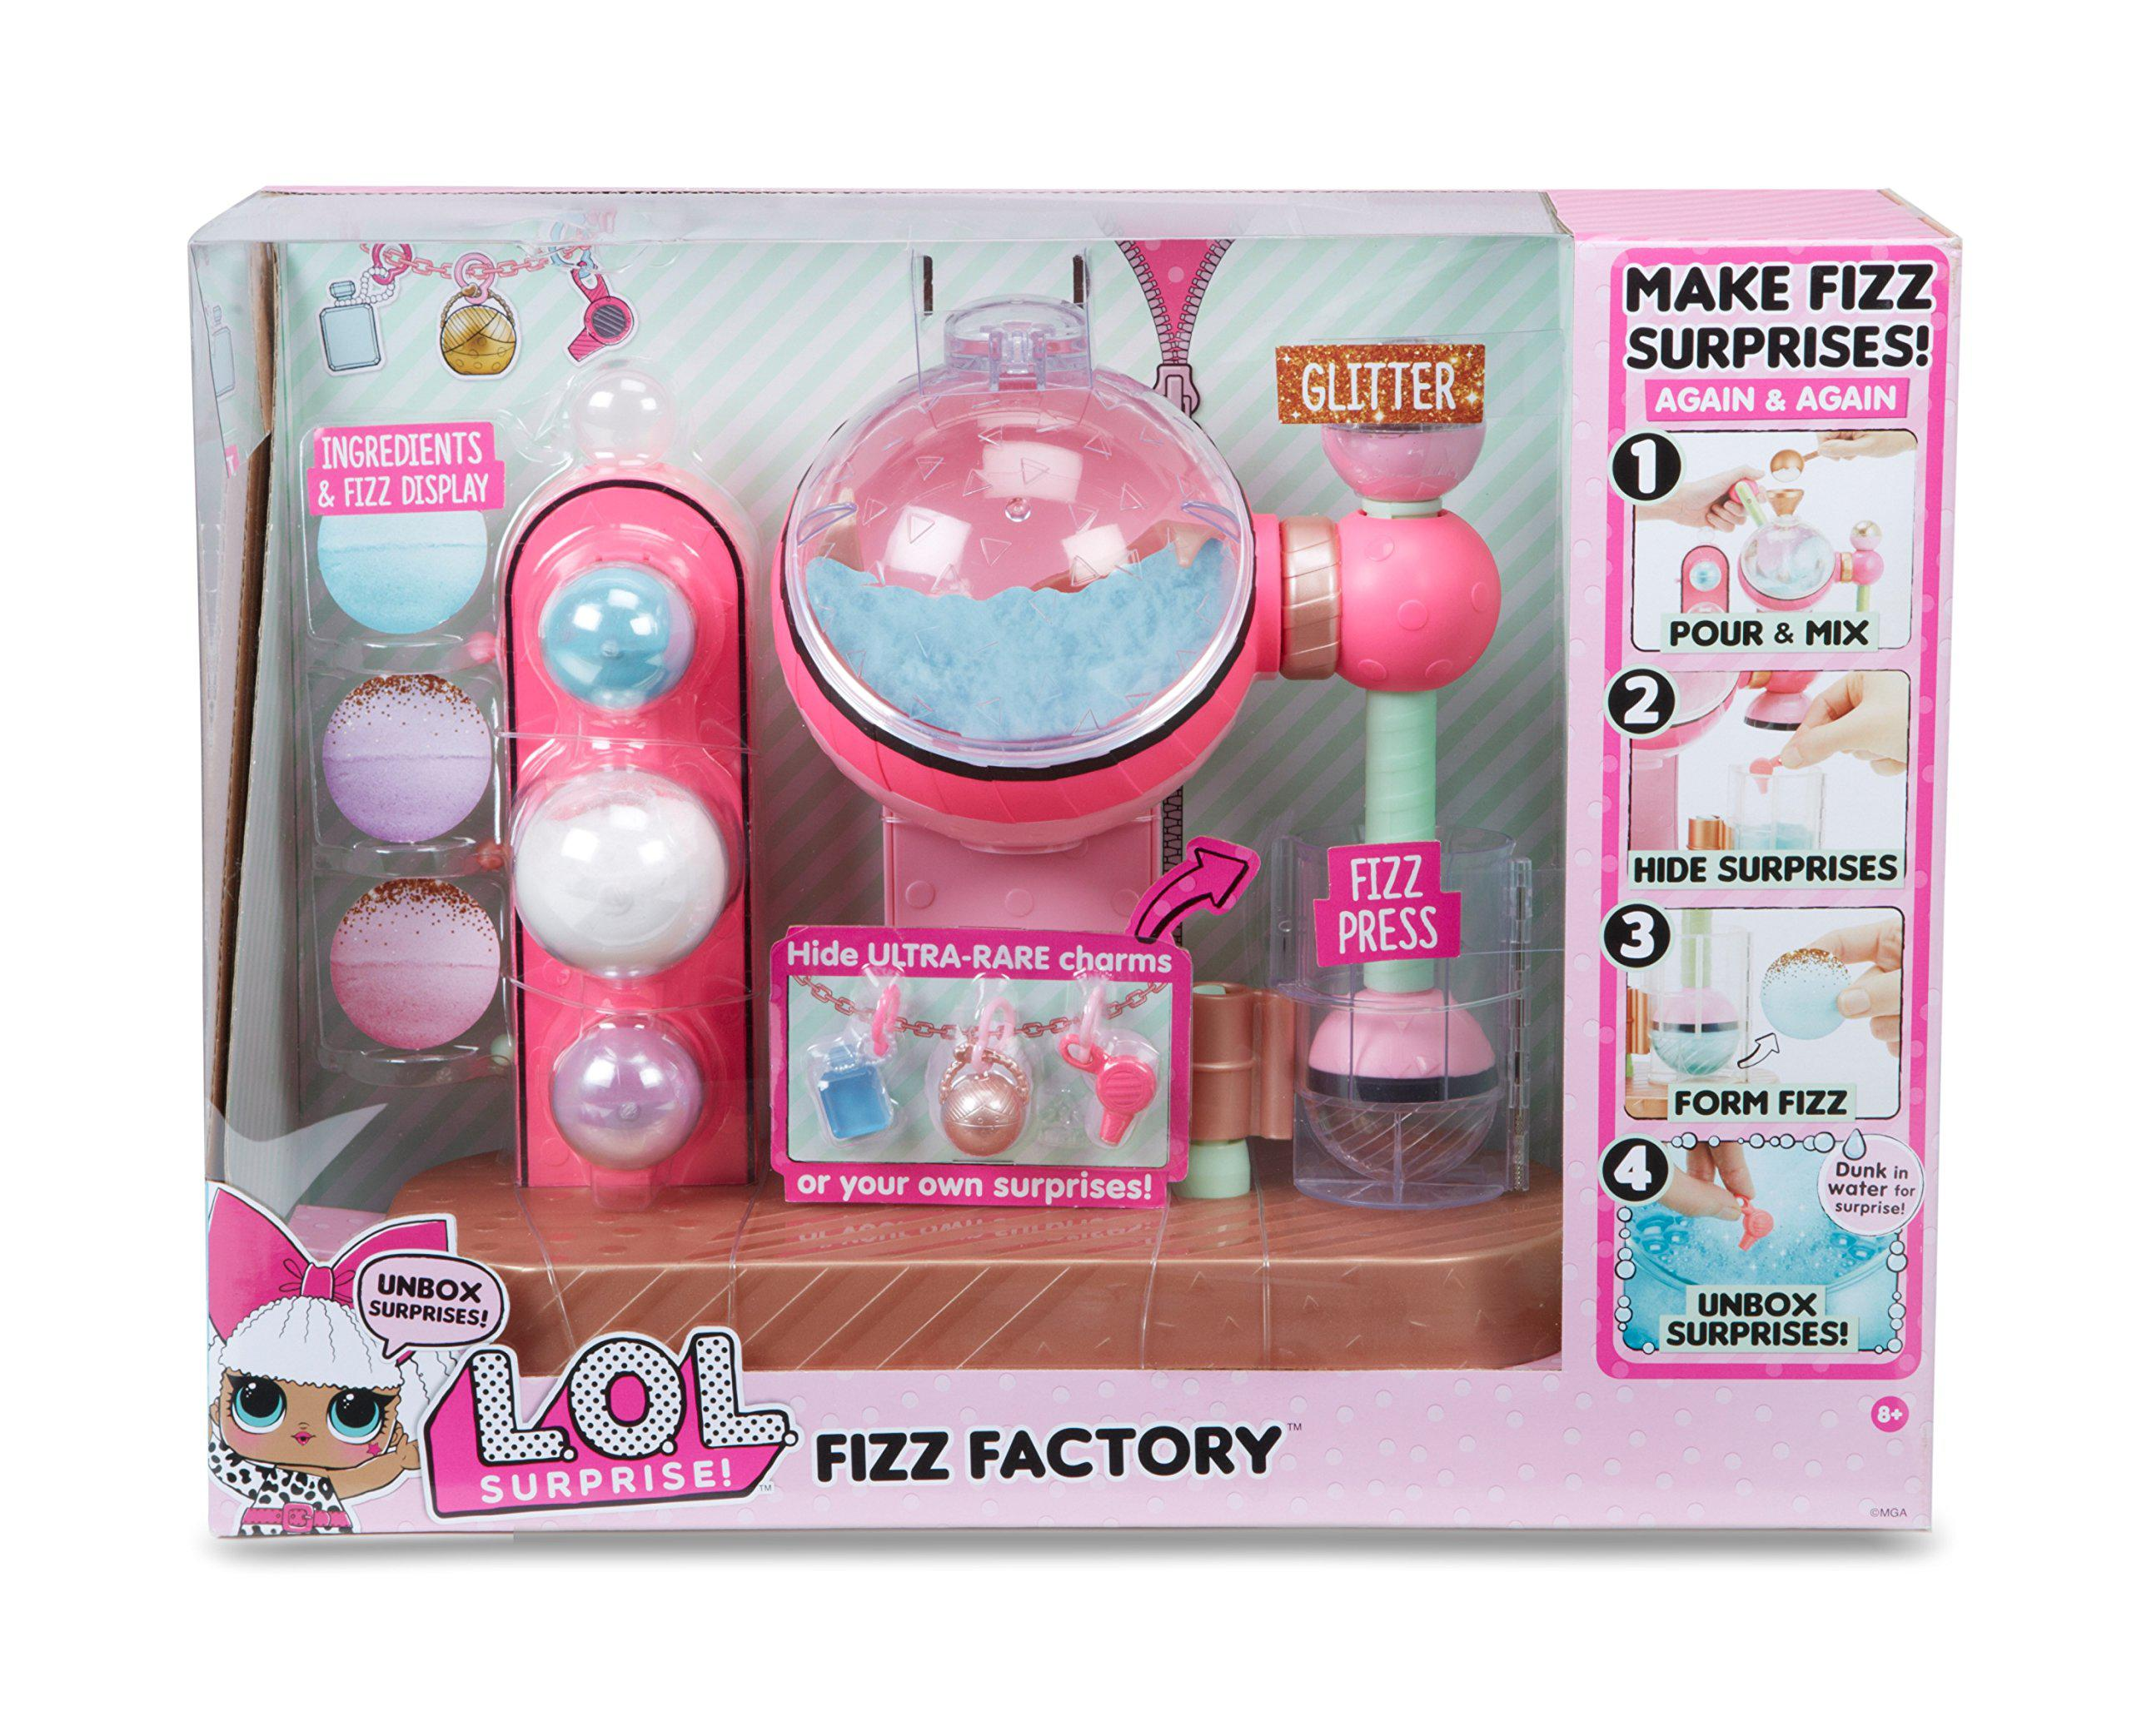 L.O.L. Surprise Fizz Factory